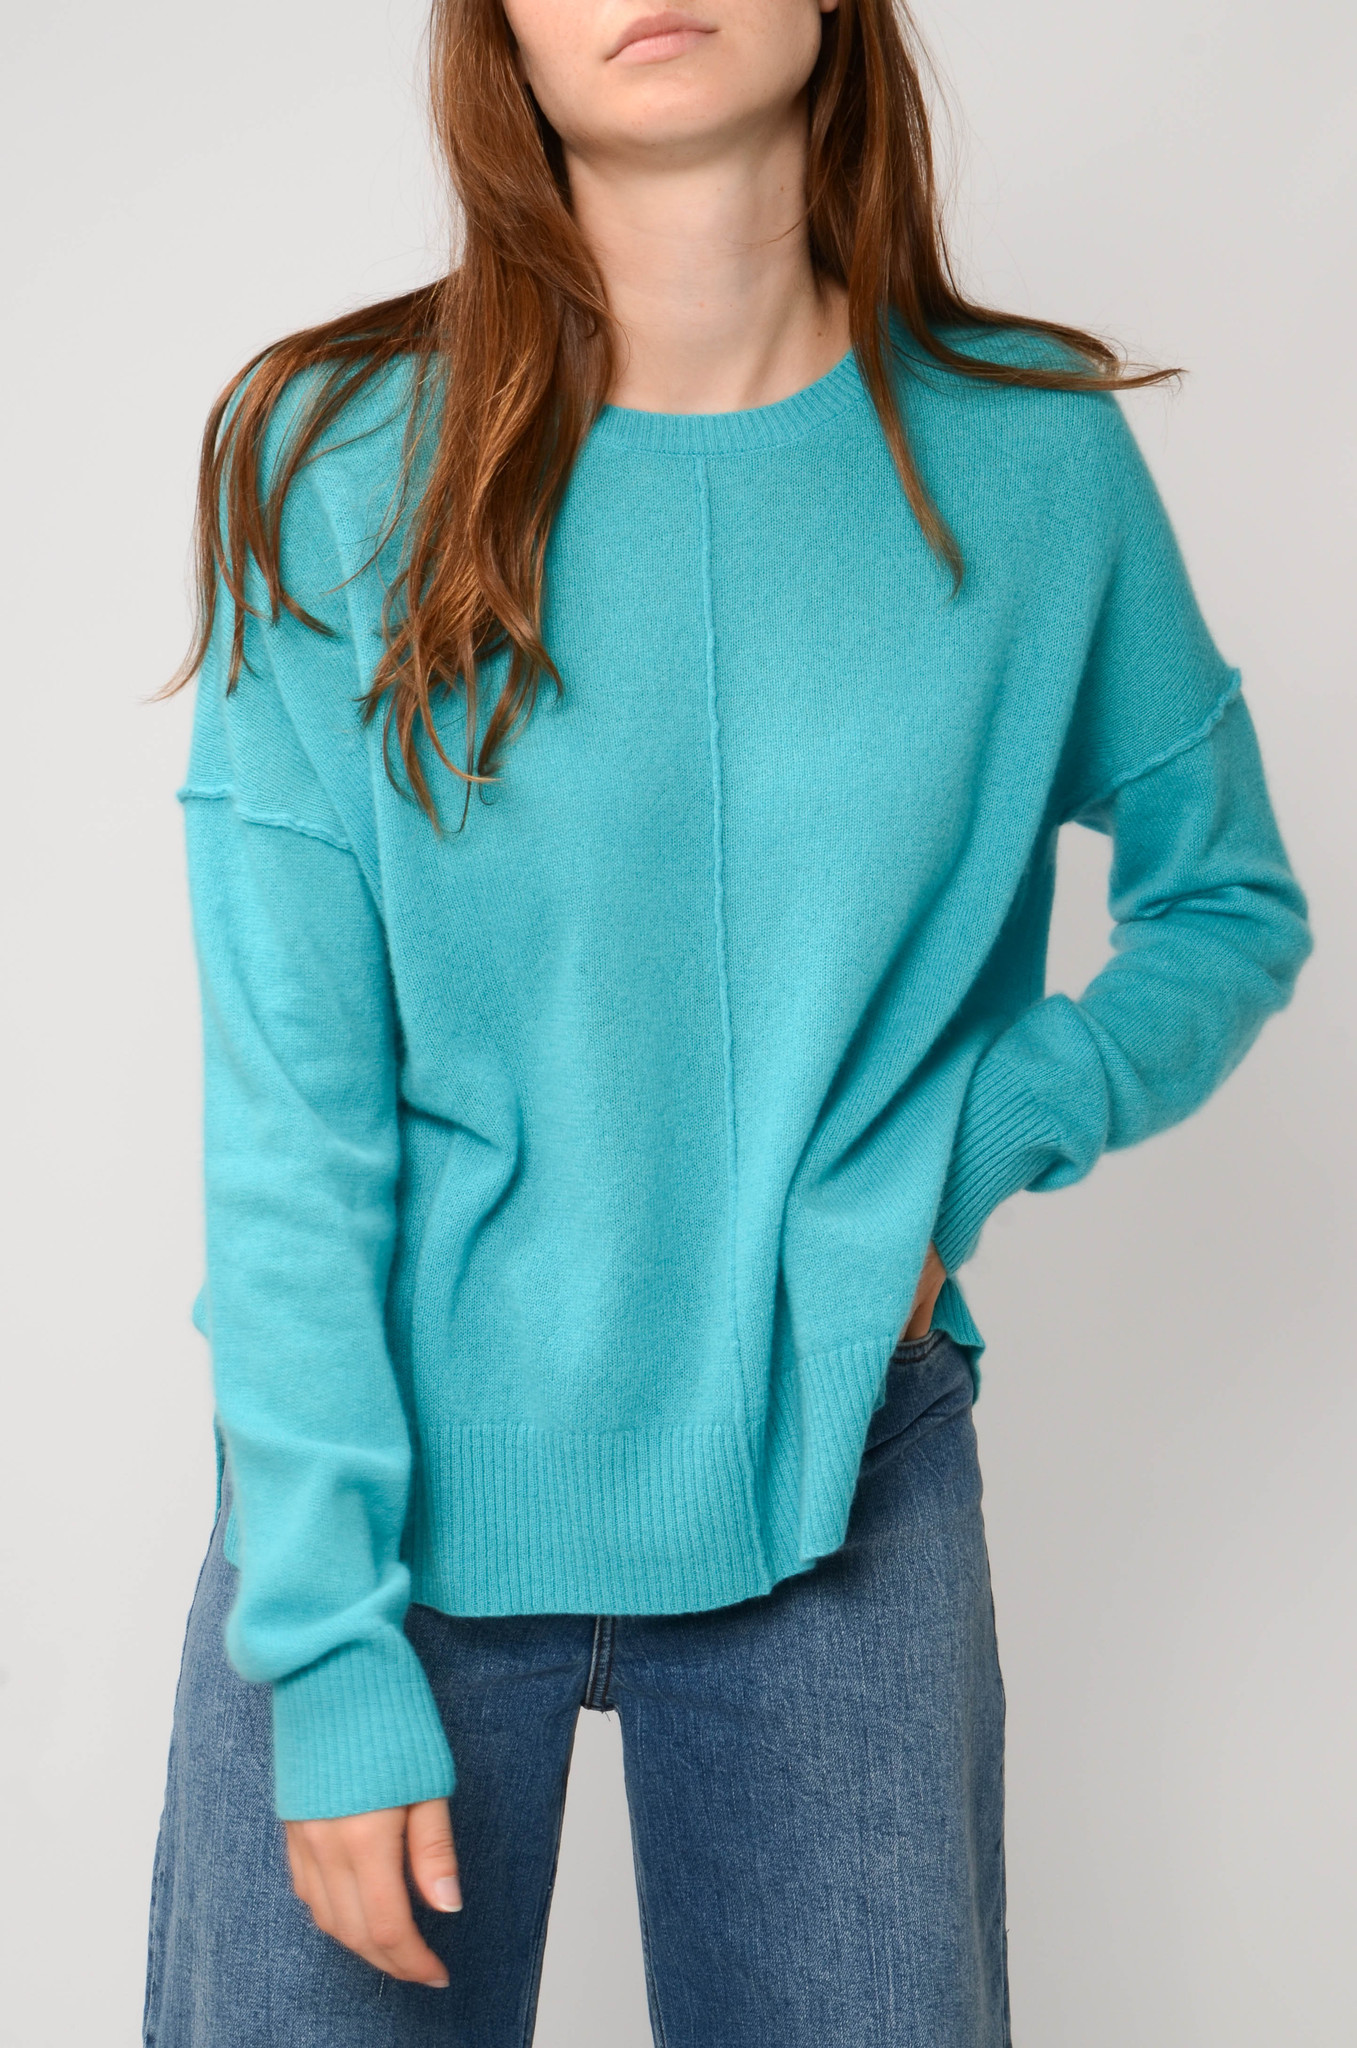 KENZA SWEATER IN TURQUOISE-5